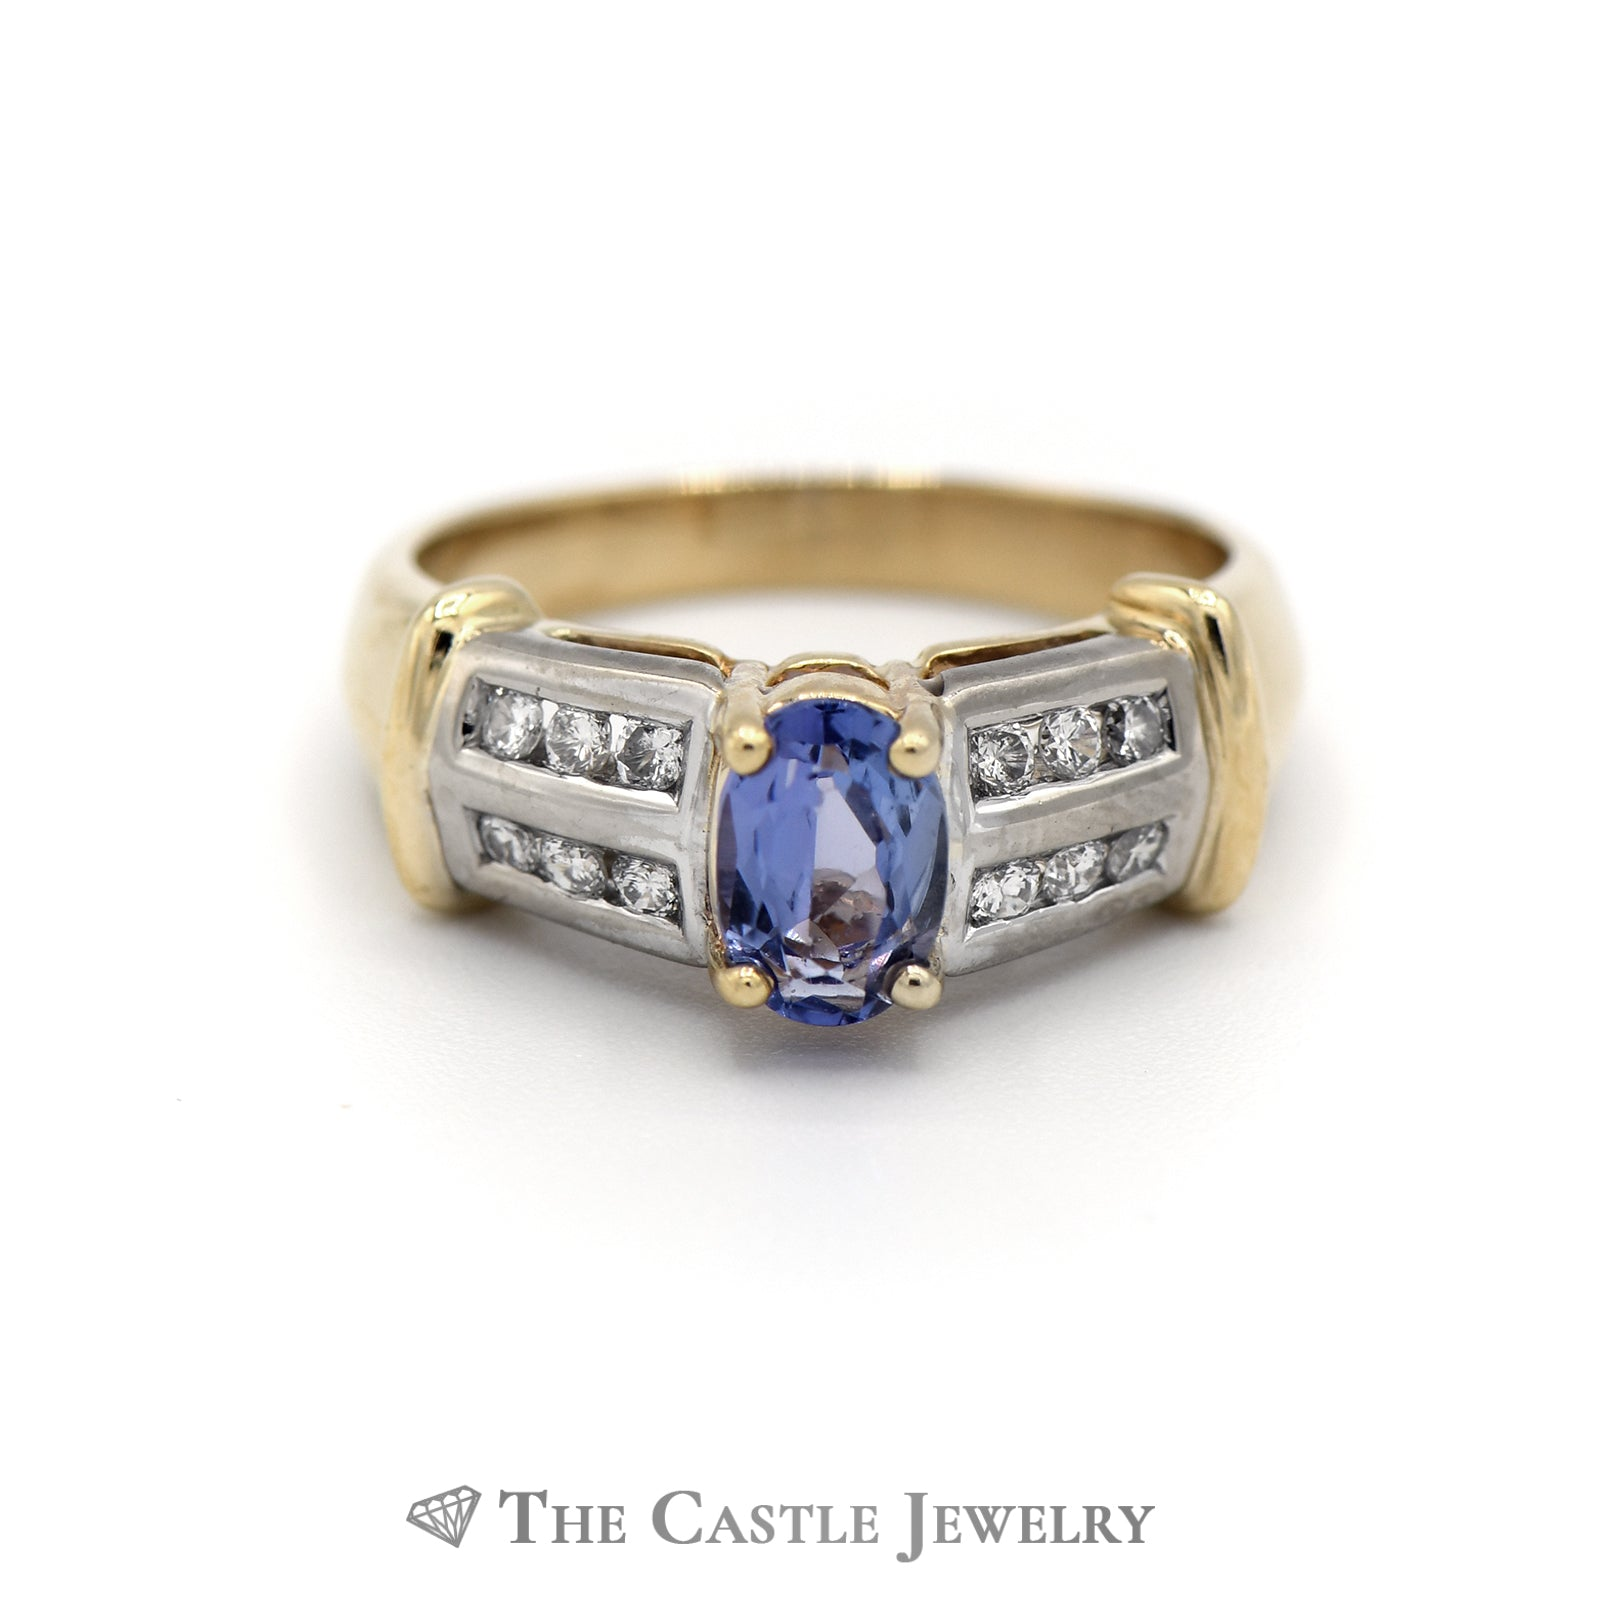 Gorgeous Oval Tanzanite Ring, Round Brilliant Cut Diamond Sides in Yellow Gold